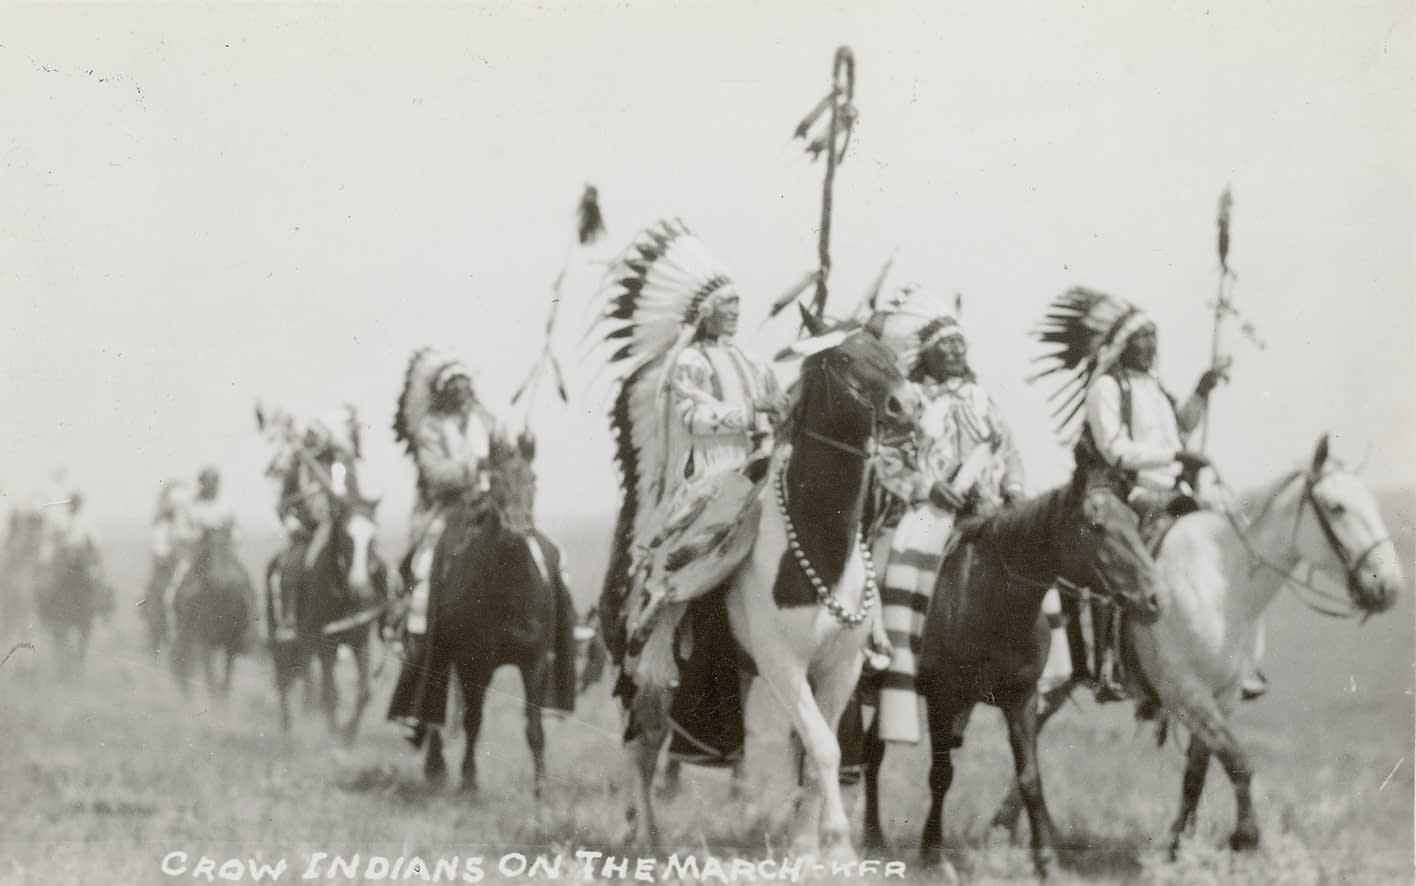 Crow Native Americans